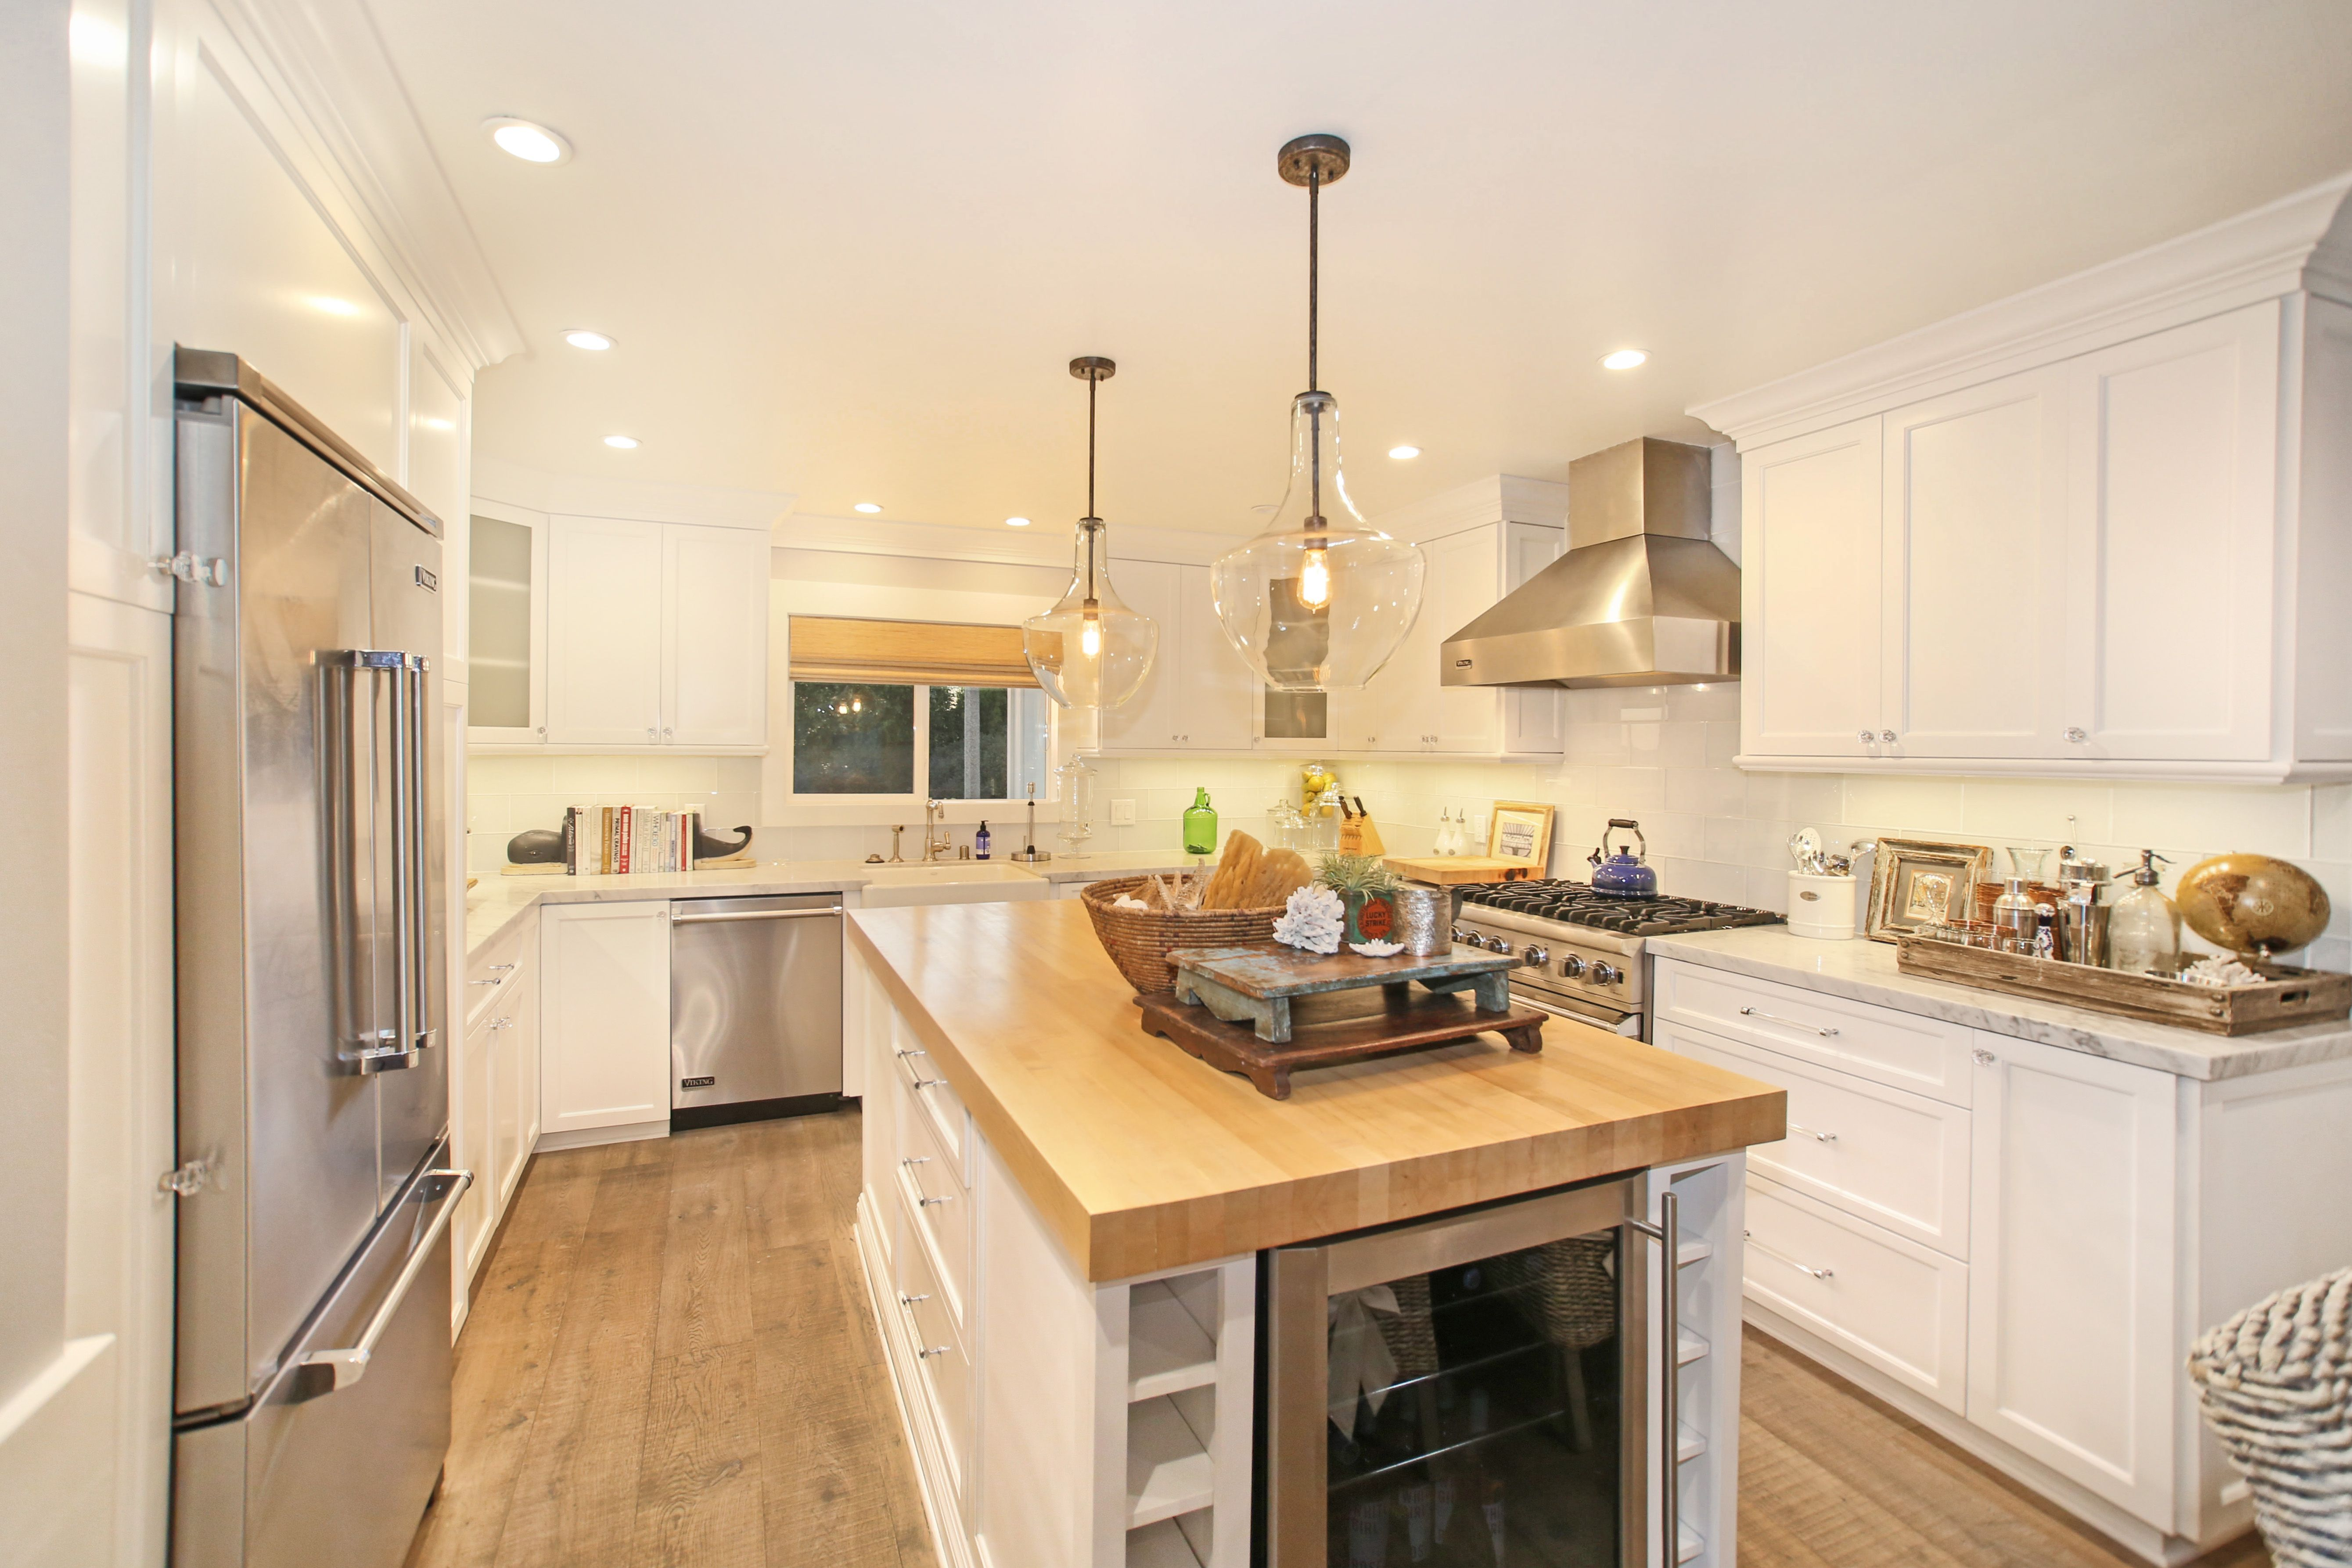 White Marble Countertops, Farm Sink And Butcher Block Island With Wine  Unit. Perfect Mix